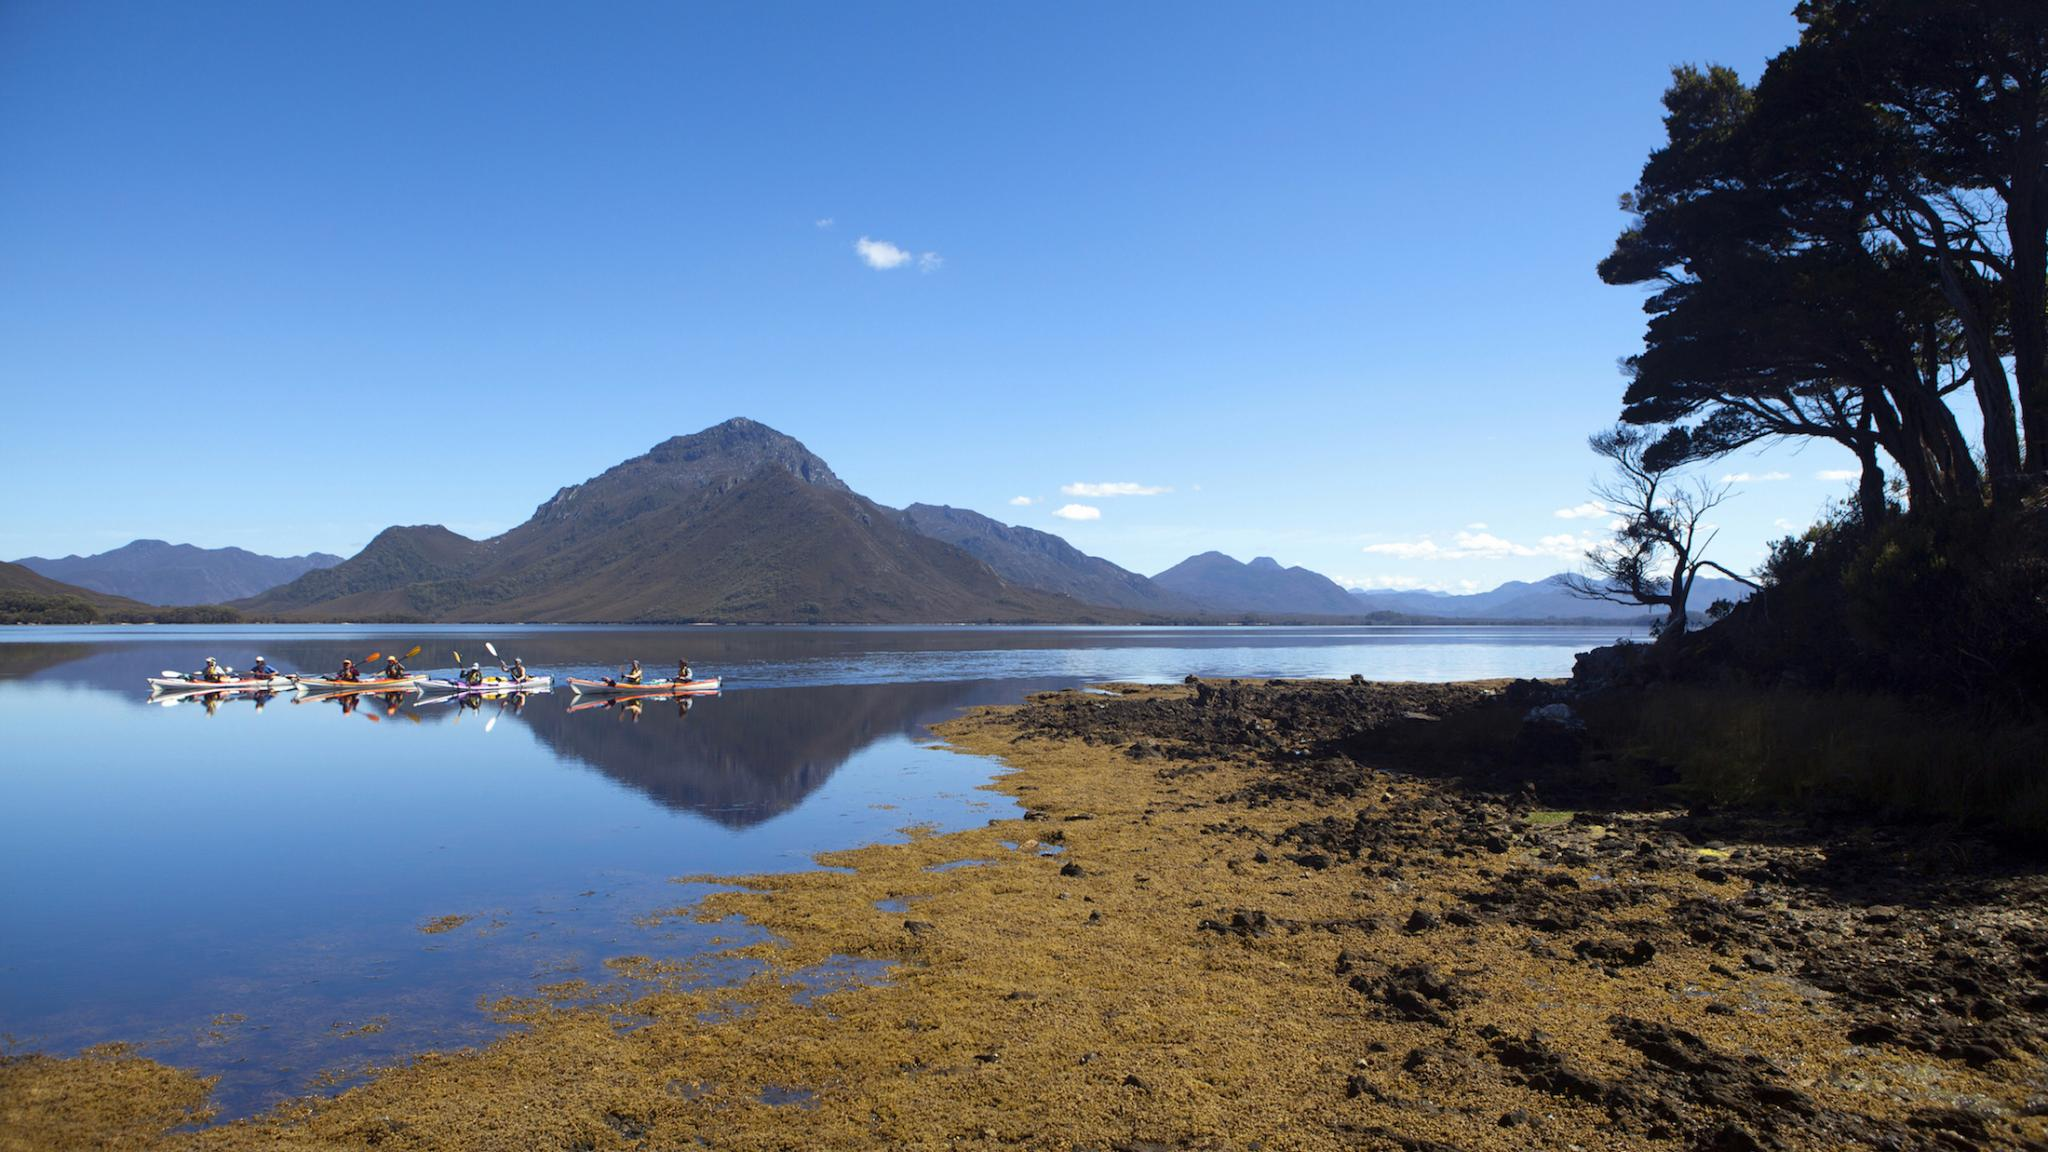 Roaring 40s Kayaking - Kayaking adventure tour on Bathurst Harbour, Southwest Tasmania